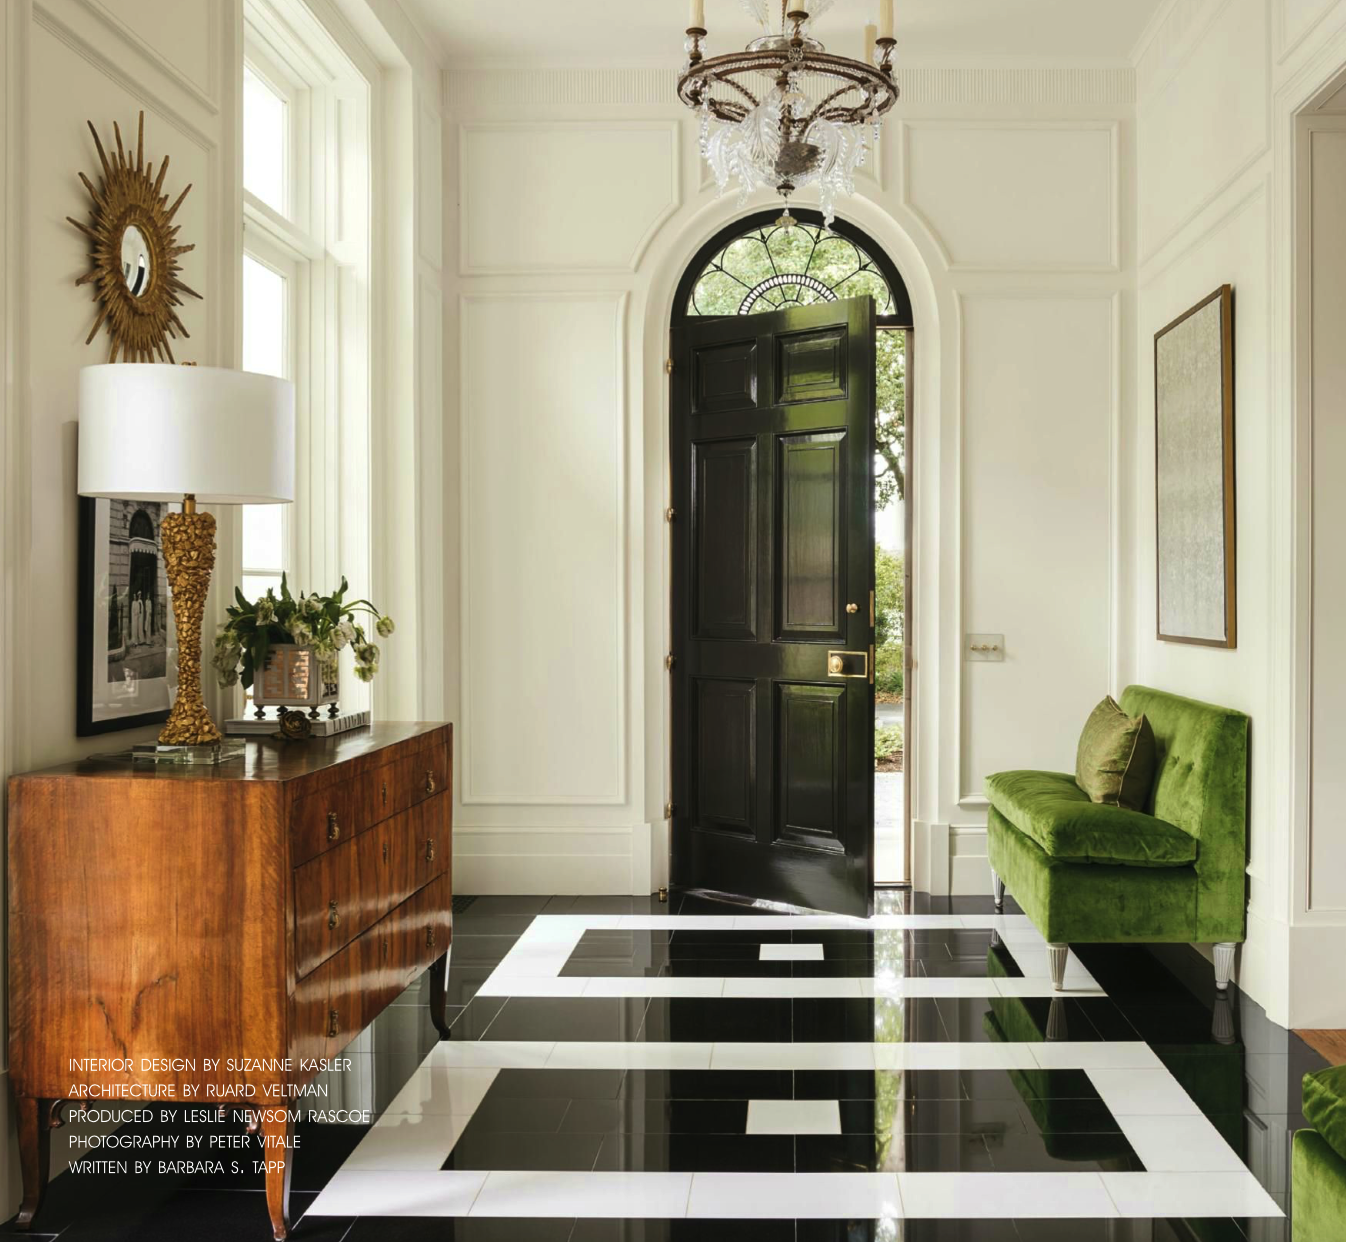 Share Tweet Pin Mail Suzanne Kasler Is One Of My Very Favorite Interior Designers I